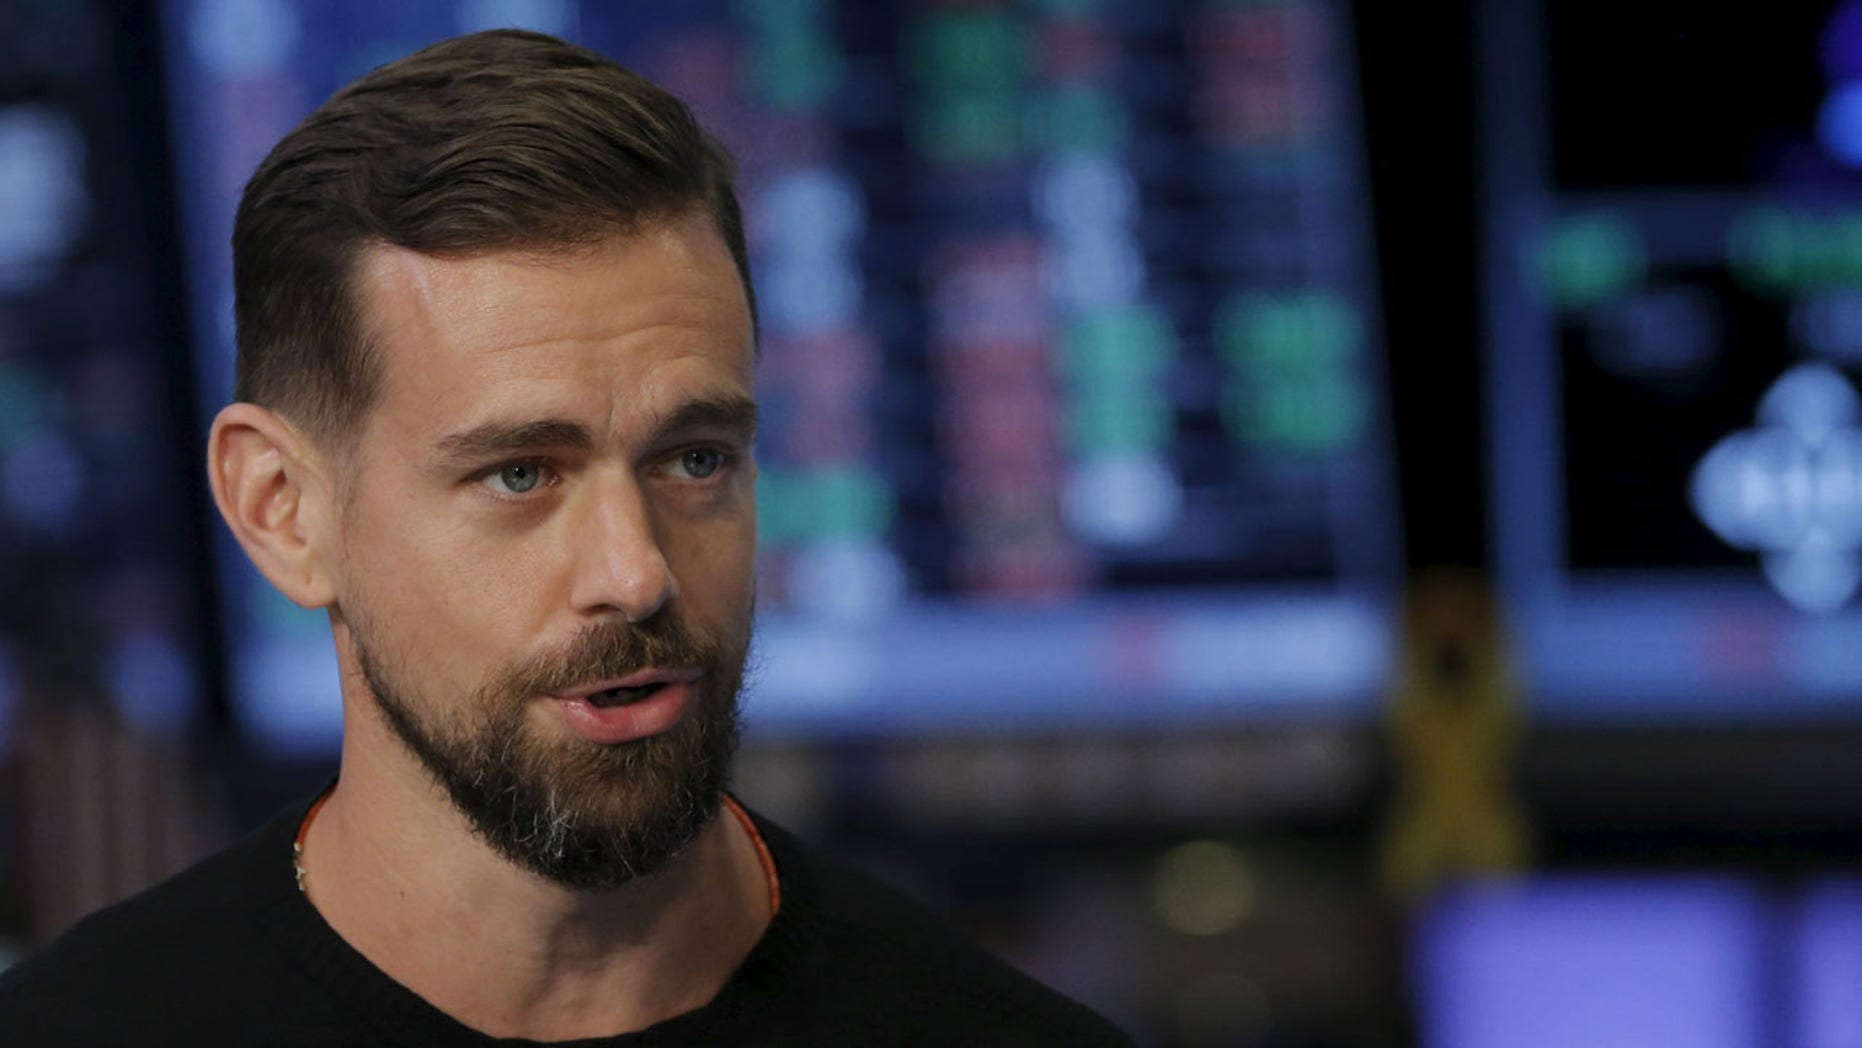 Jack Dorsey, CEO of Square and CEO of Twitter, speaks during an interview with CNBC following the IPO for Square Inc., on the floor of the New York Stock Exchange November 19, 2015.